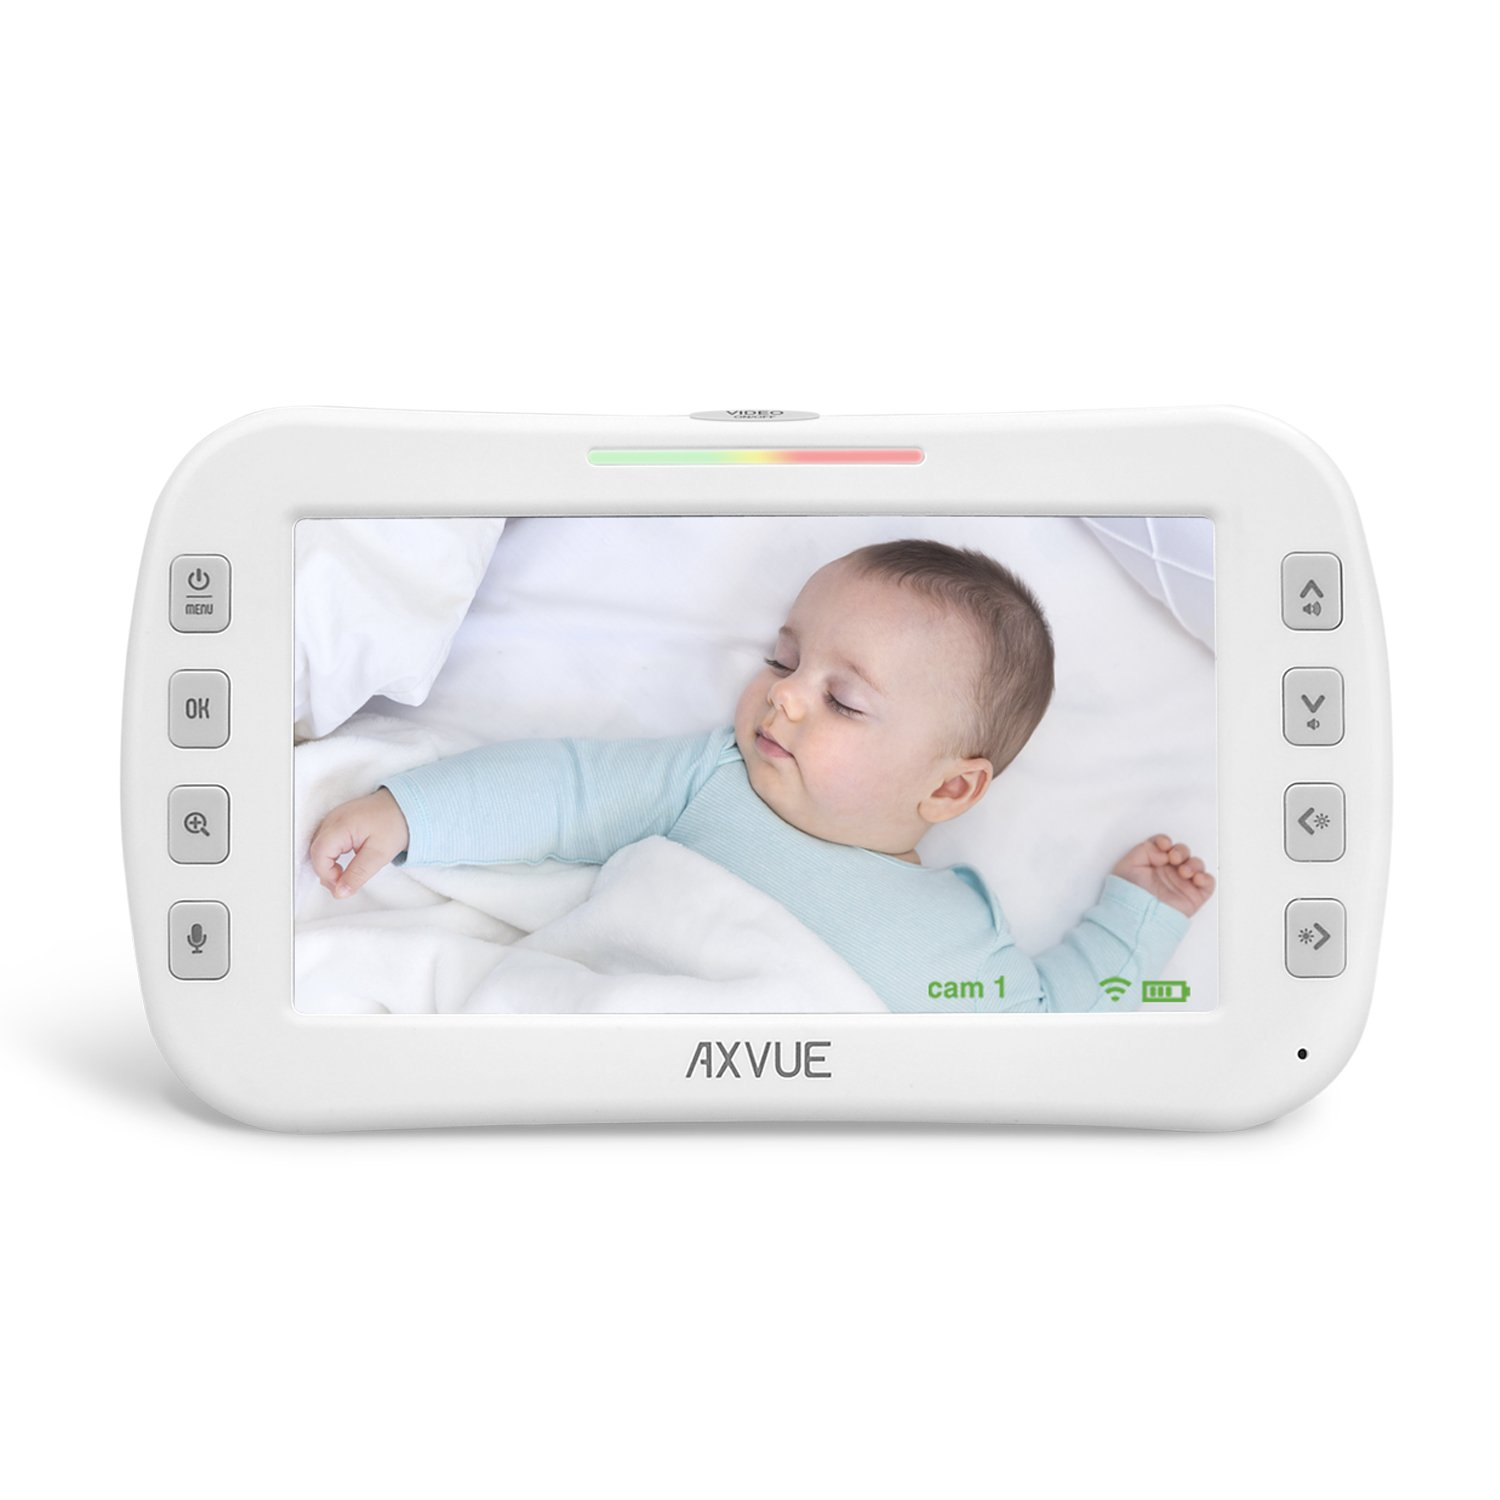 Additional Monitor for AXVUE Video Baby Monitor E632R by Axvue